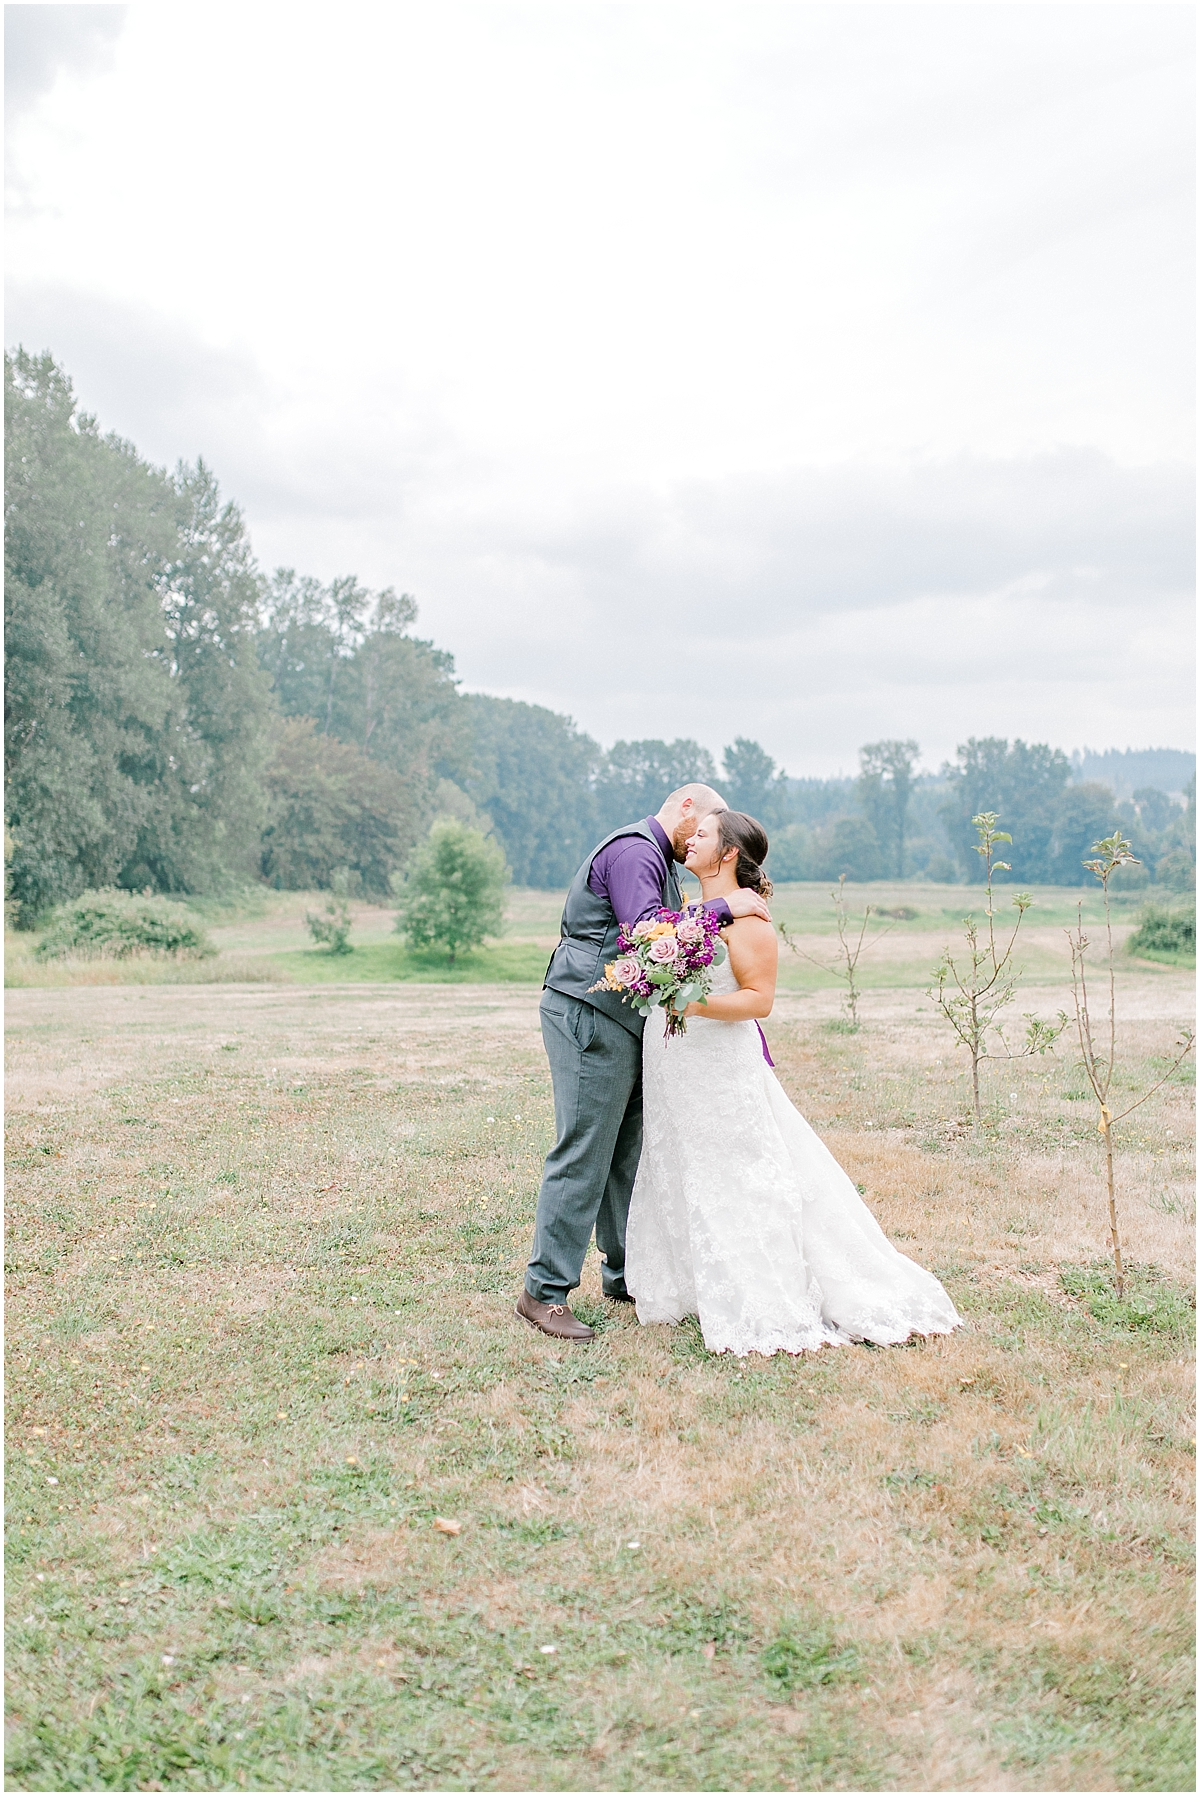 Sunflower themed wedding with purple accents, Emma Rose Company Seattle Wedding Photographer, Light and Airy photographer Kindred Presets Wedding Details PNW_0115.jpg